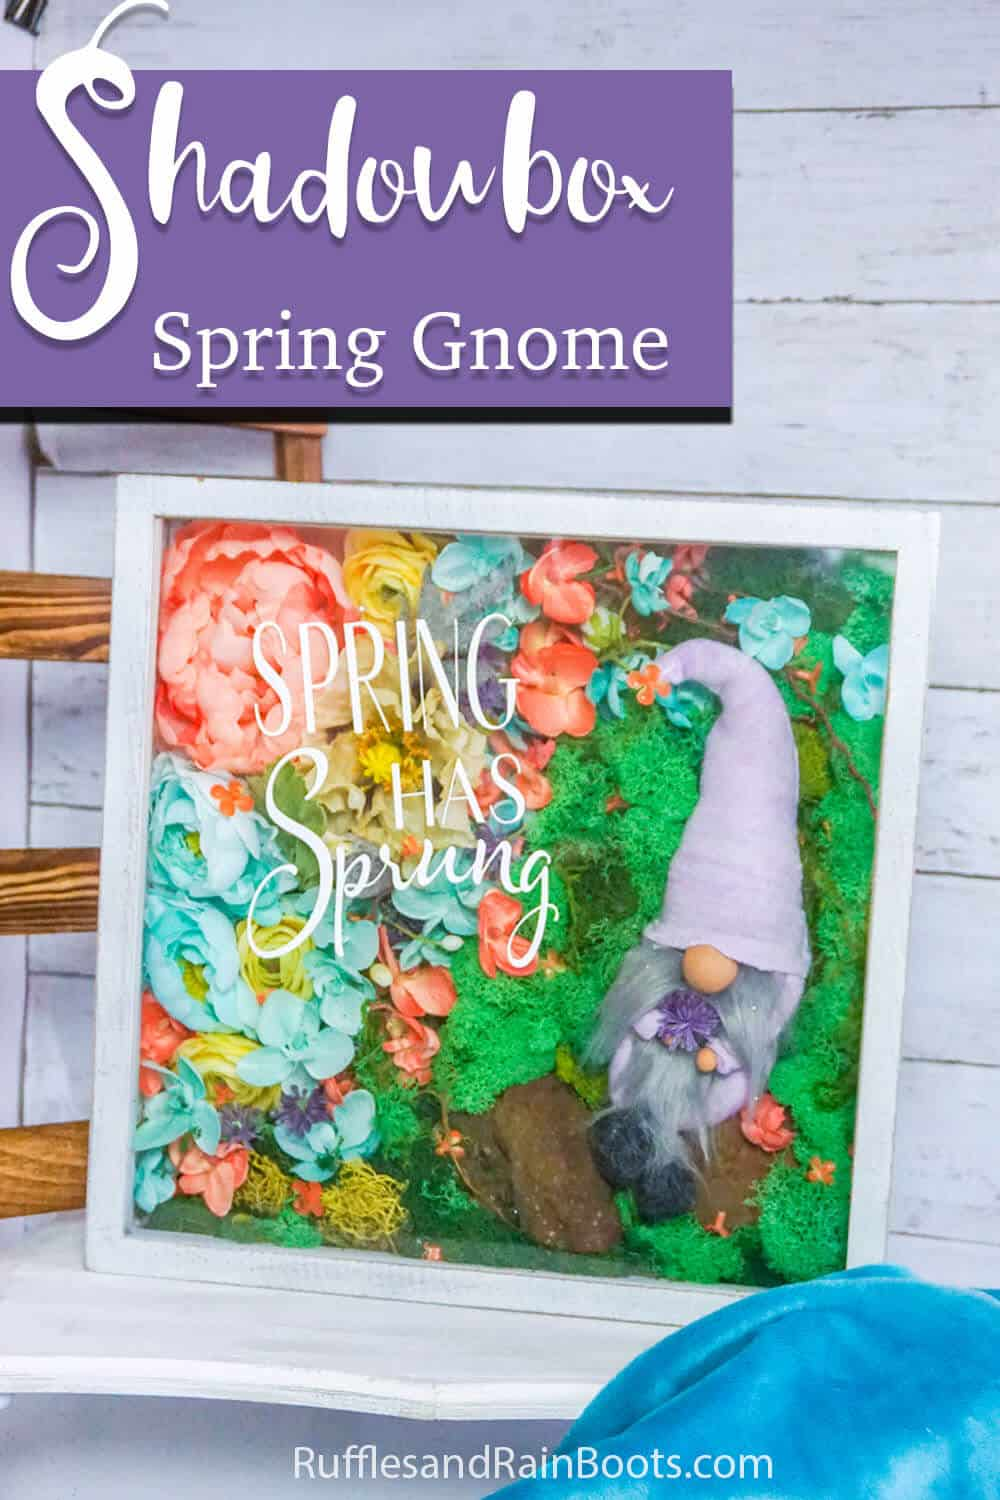 spring shadowbox craft with text which reads shadowbox spring gnome